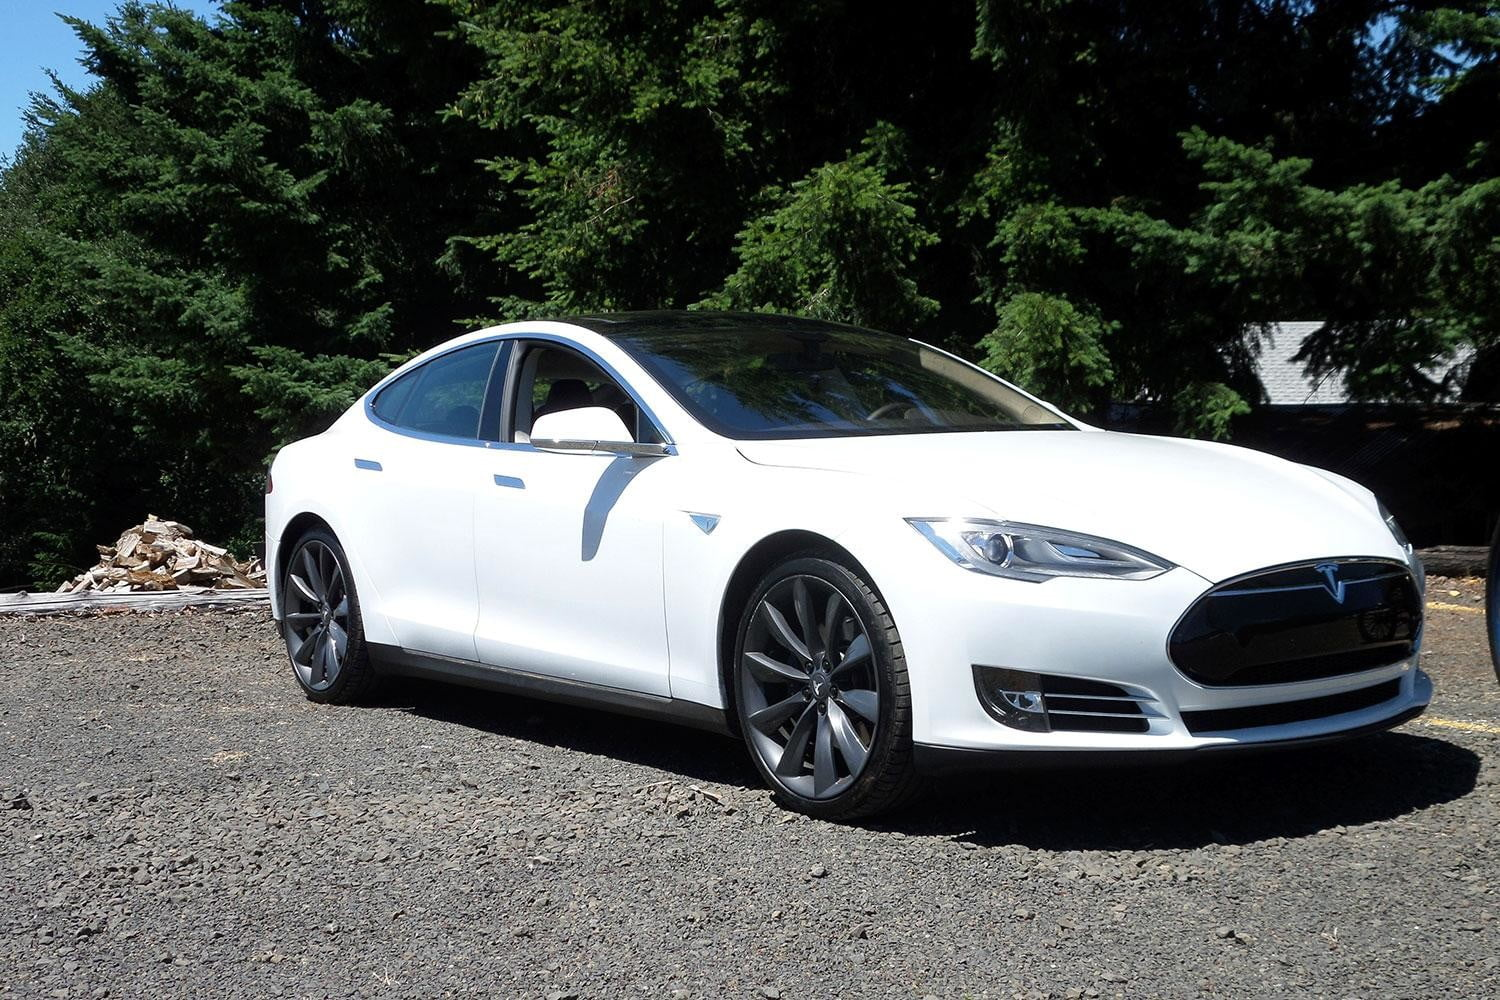 Tesla S front right